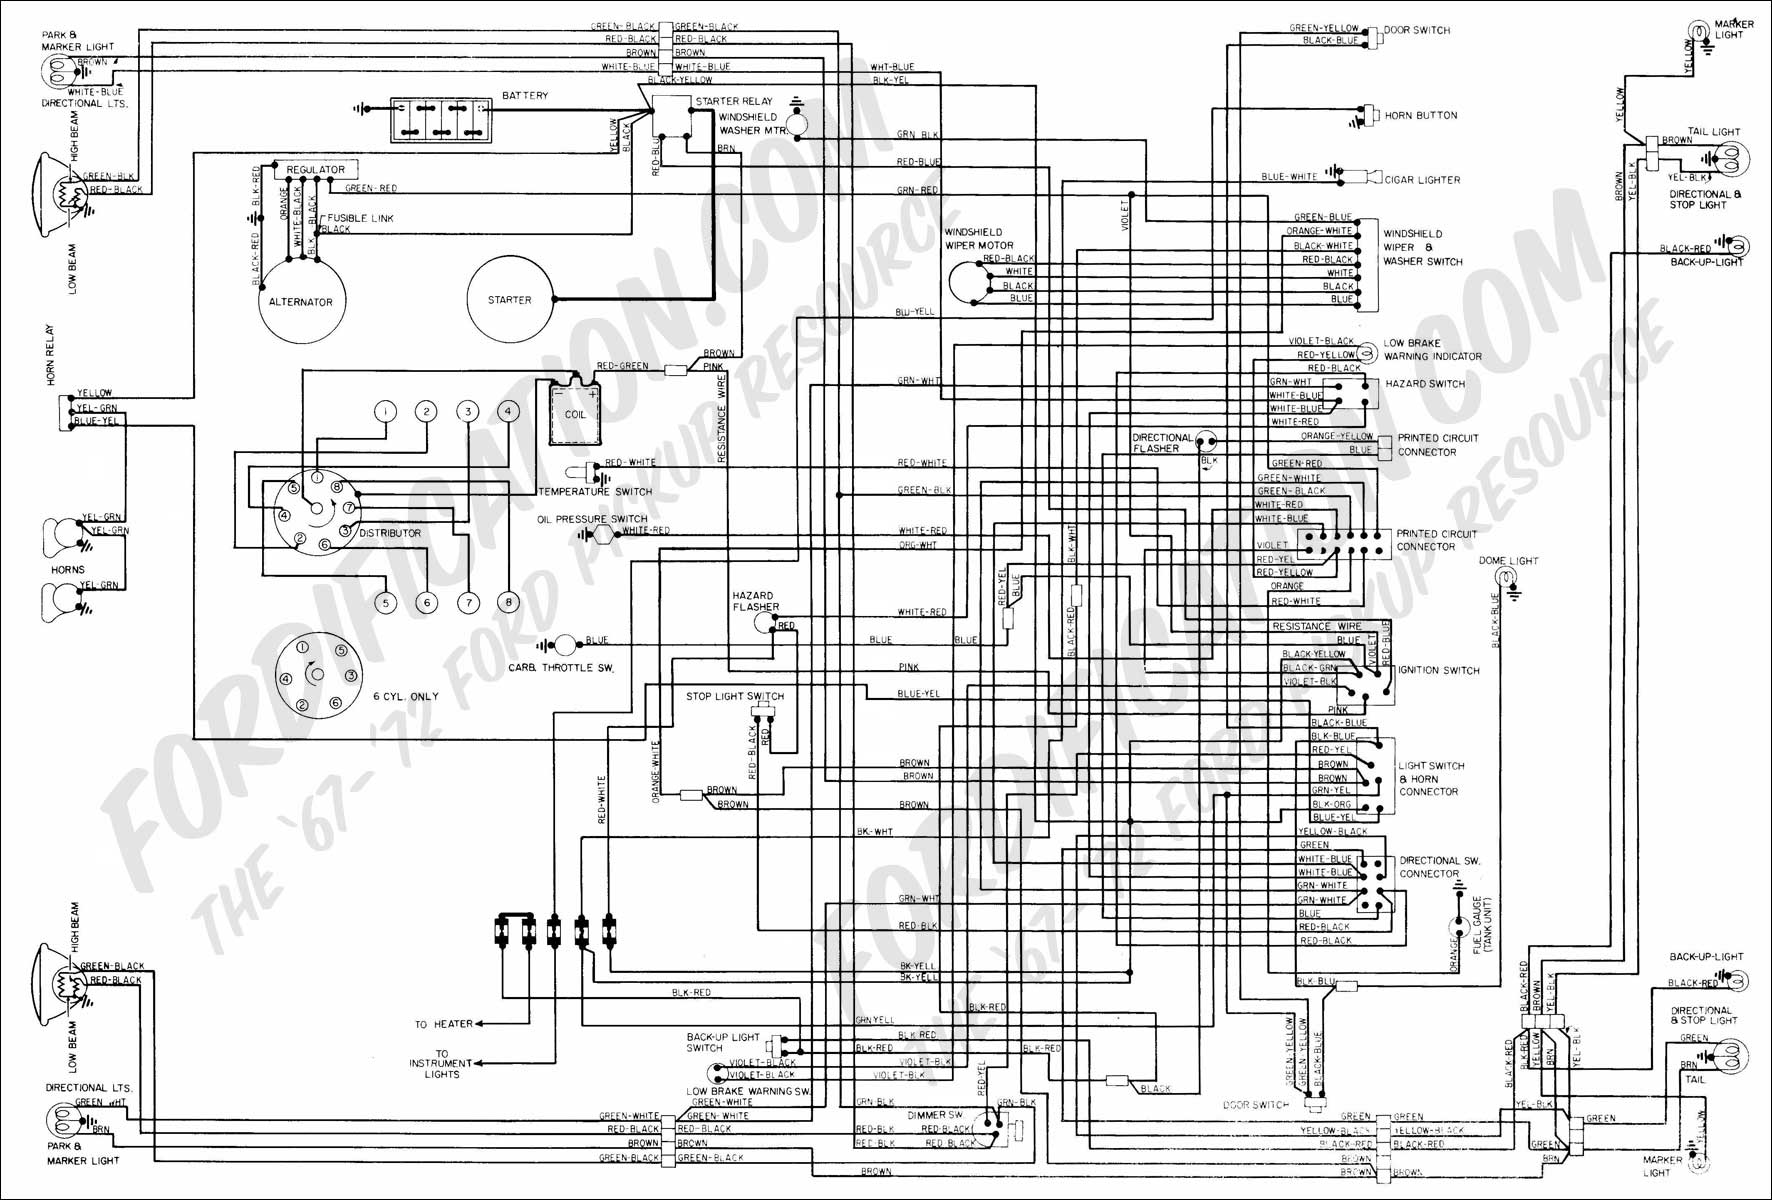 Pioneer Deh 1650 Wiring Diagram And Schematics Moreover Radio 1600 Electronics Usa Source 72 Quick Furthermore Car Stereo